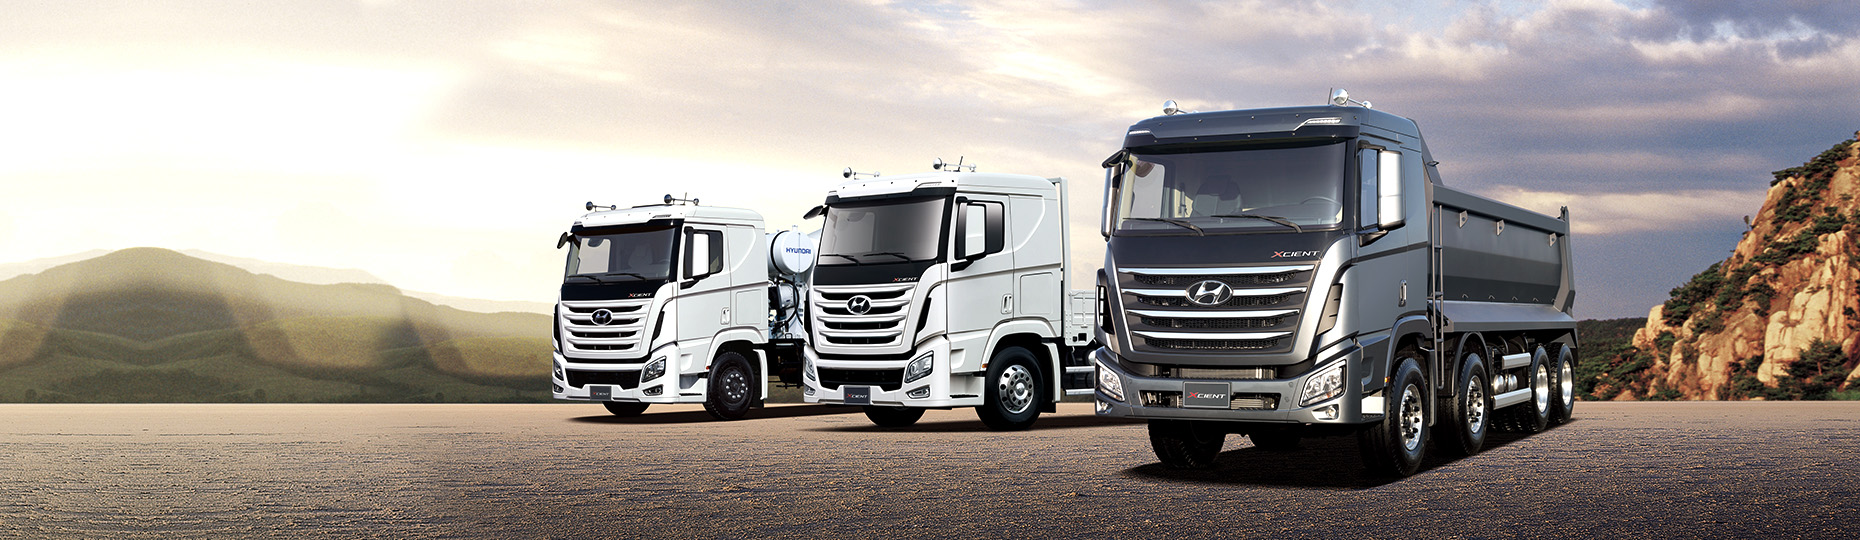 interview commercial hyundai owner vehicle trucks